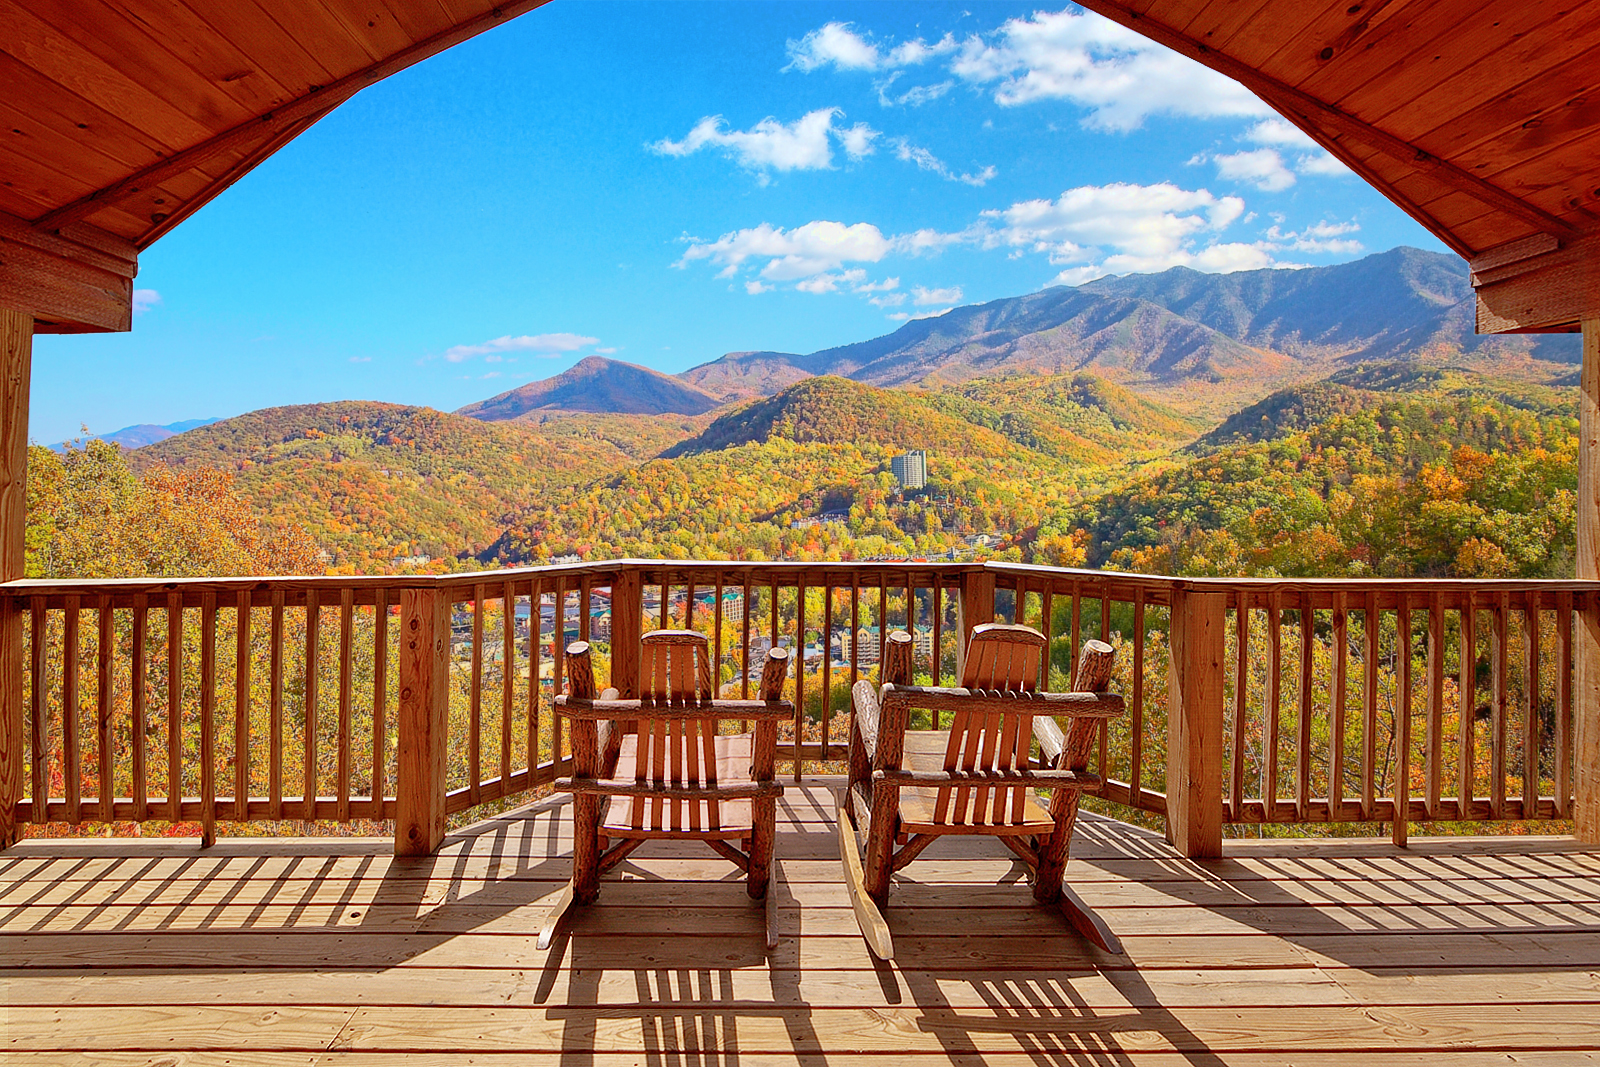 Top 5 beautiful little mountain towns in america Best mountain view cabins in gatlinburg tn